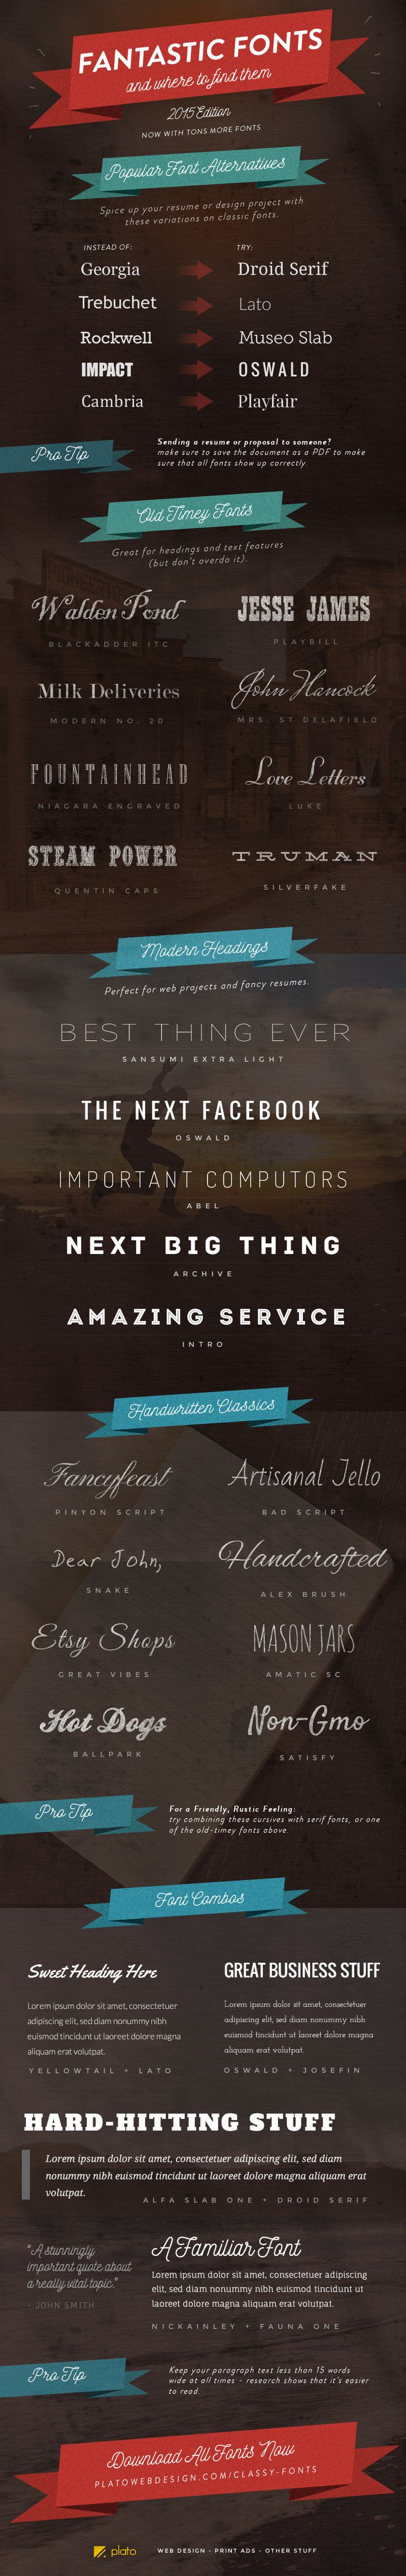 THE ULTIMATE LIST OF FREE FONTS – 2015 EDITION (INFOGRAPHIC)  http://platowebdesign.com/articles/classy-fonts-make-even-ugly-words-look-good/